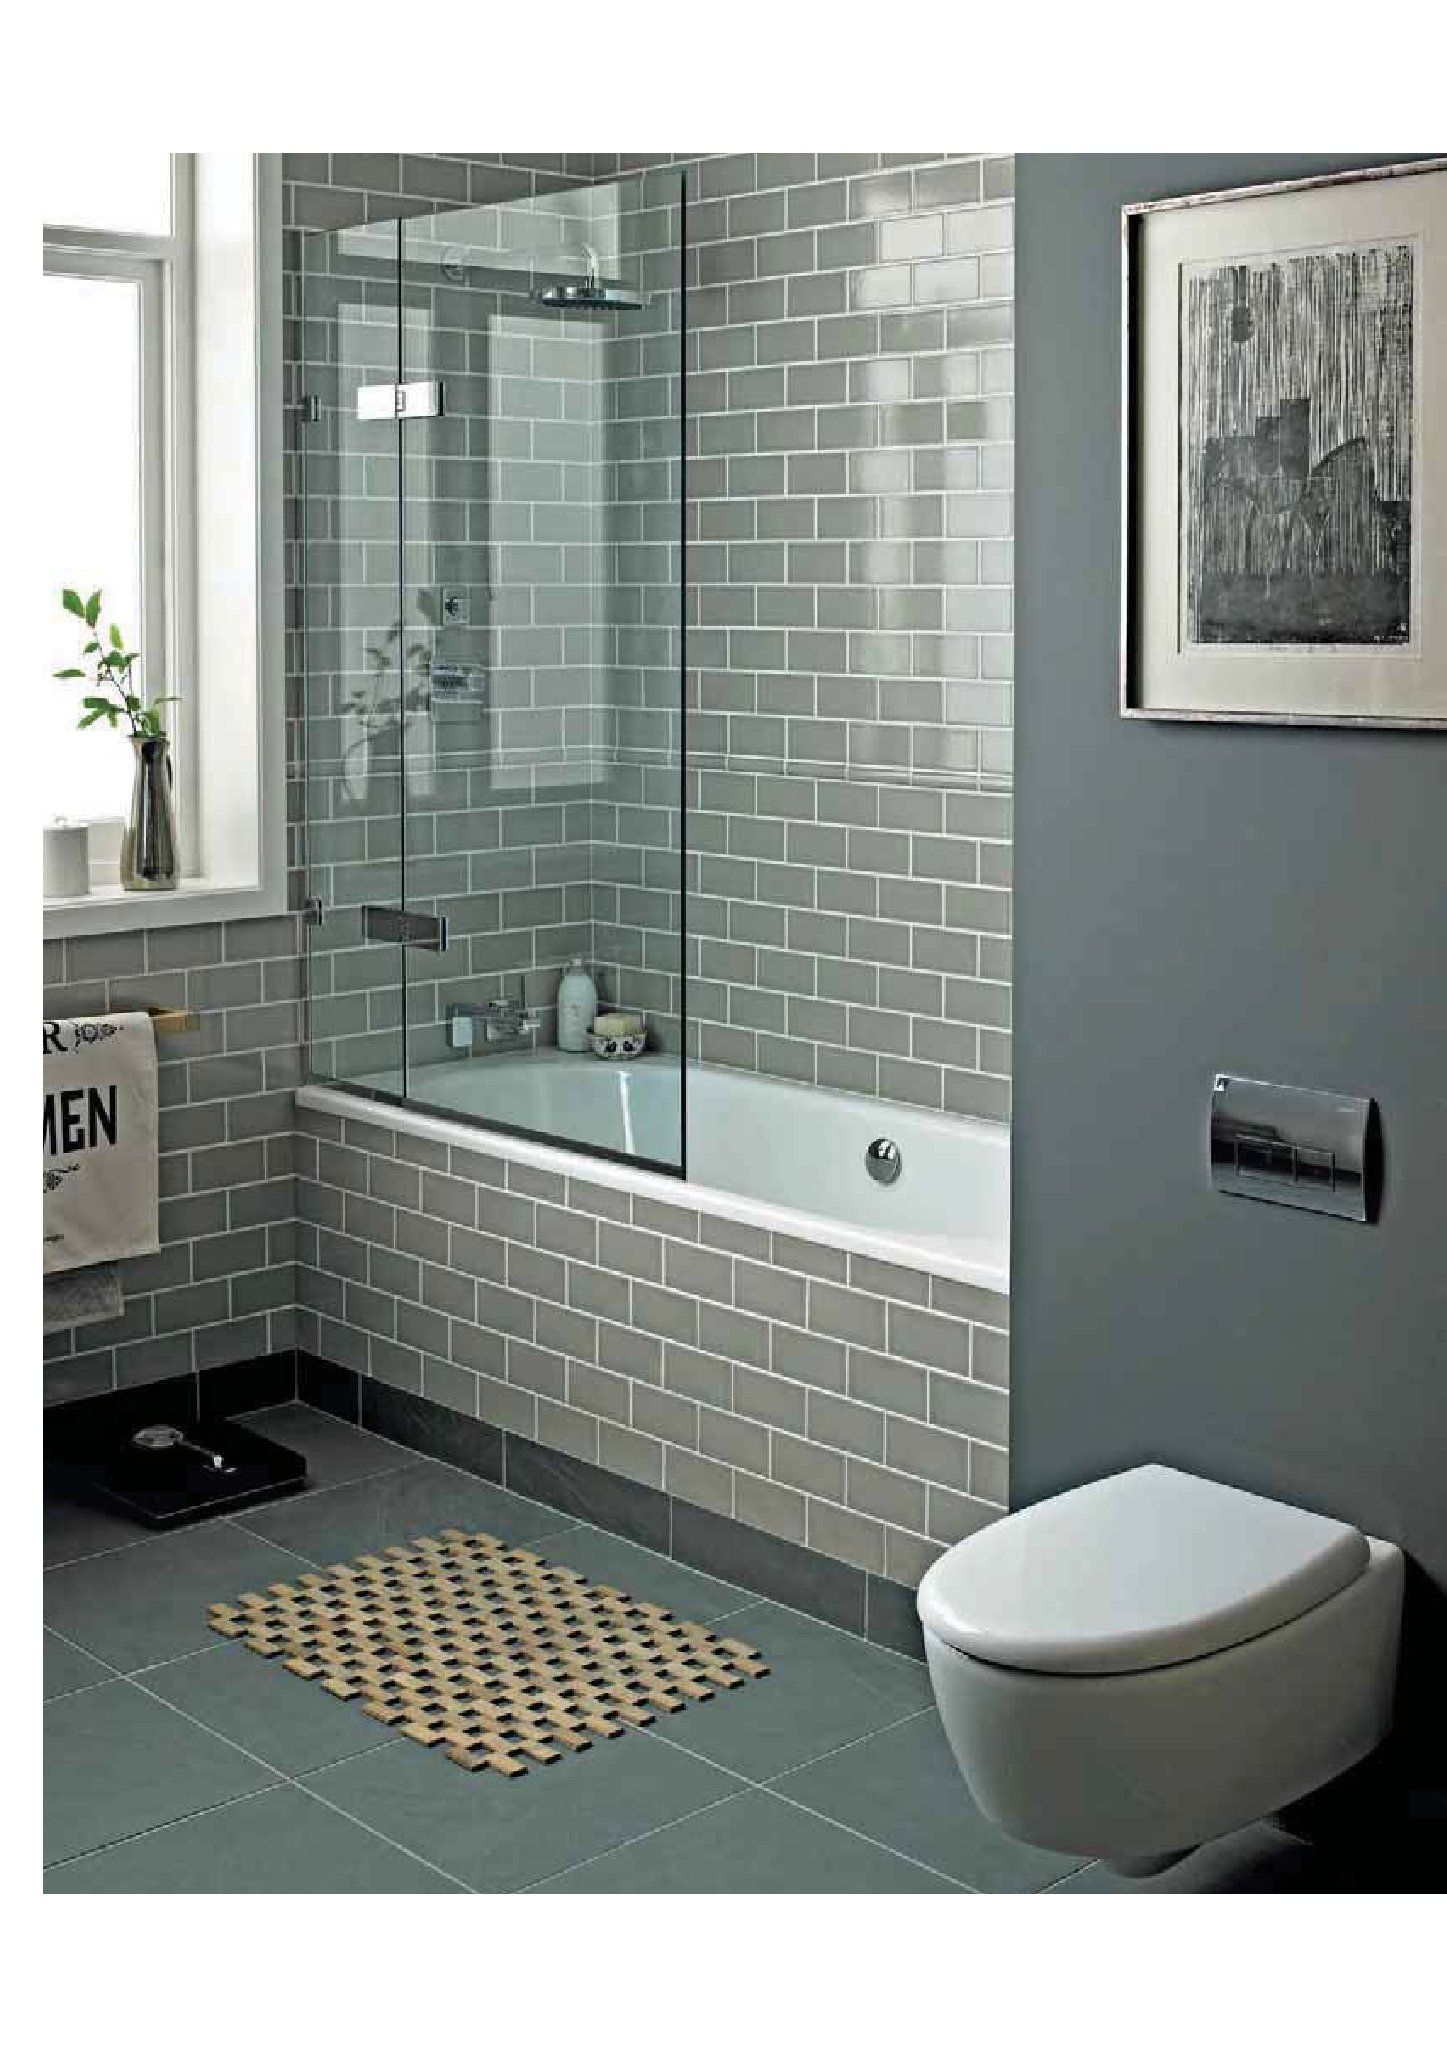 Bathroom Ideas Gray Tile smoke glass subway tile | grey bathrooms, modern shower and slate